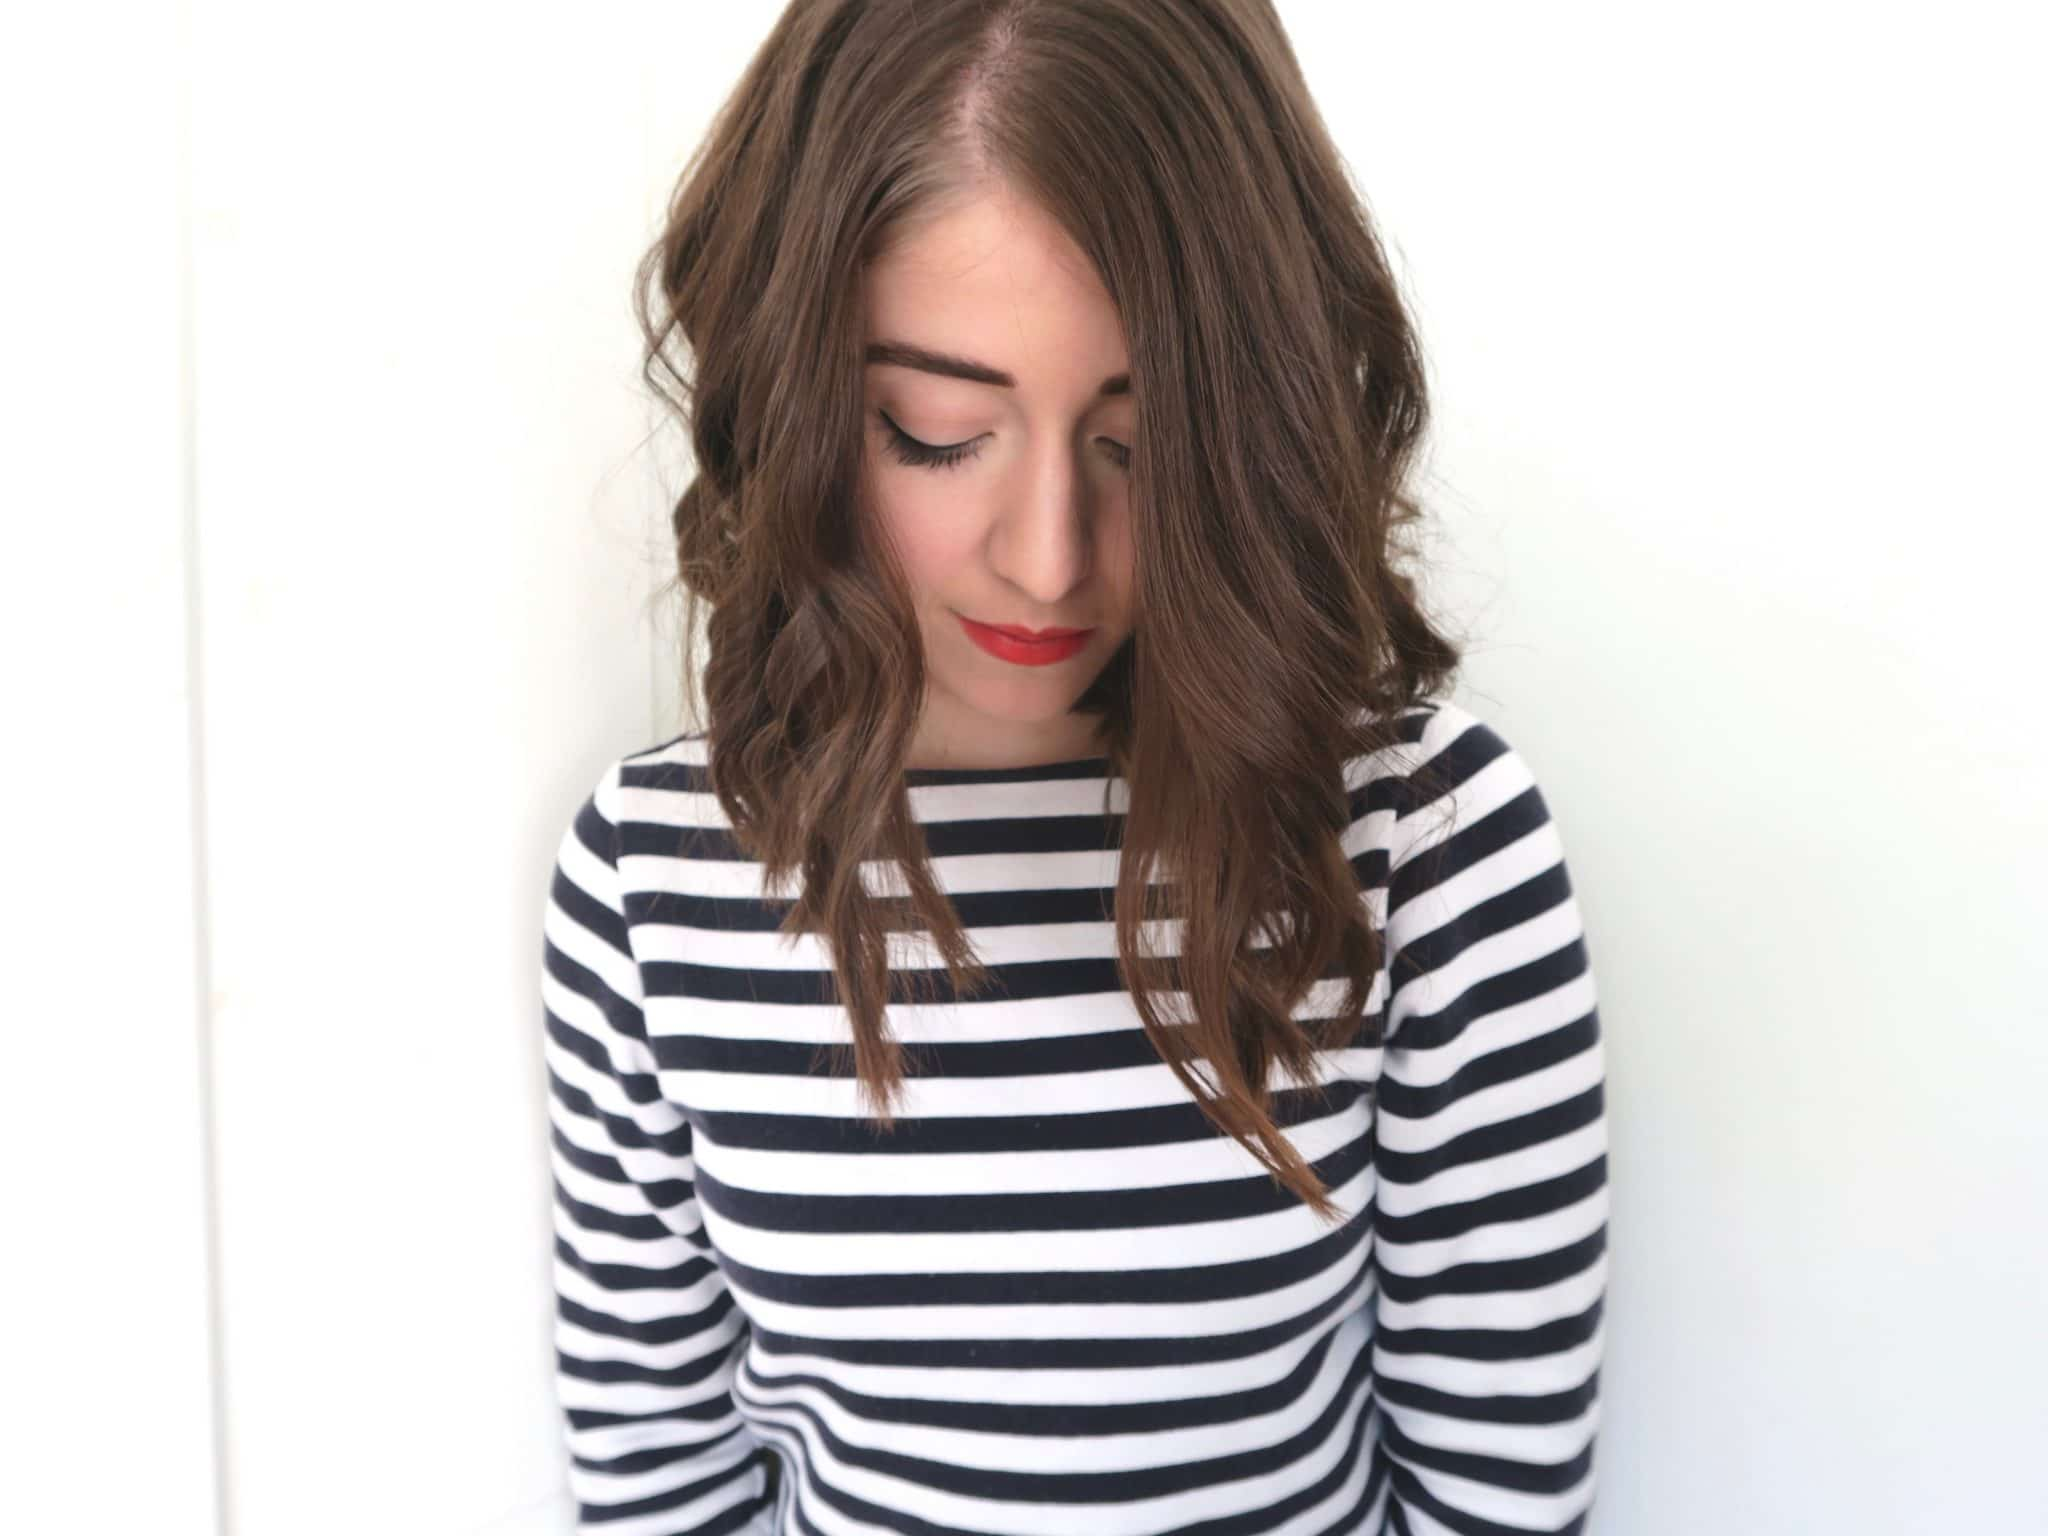 French Stripes and Red Lips Makeup | Curiously Conscious